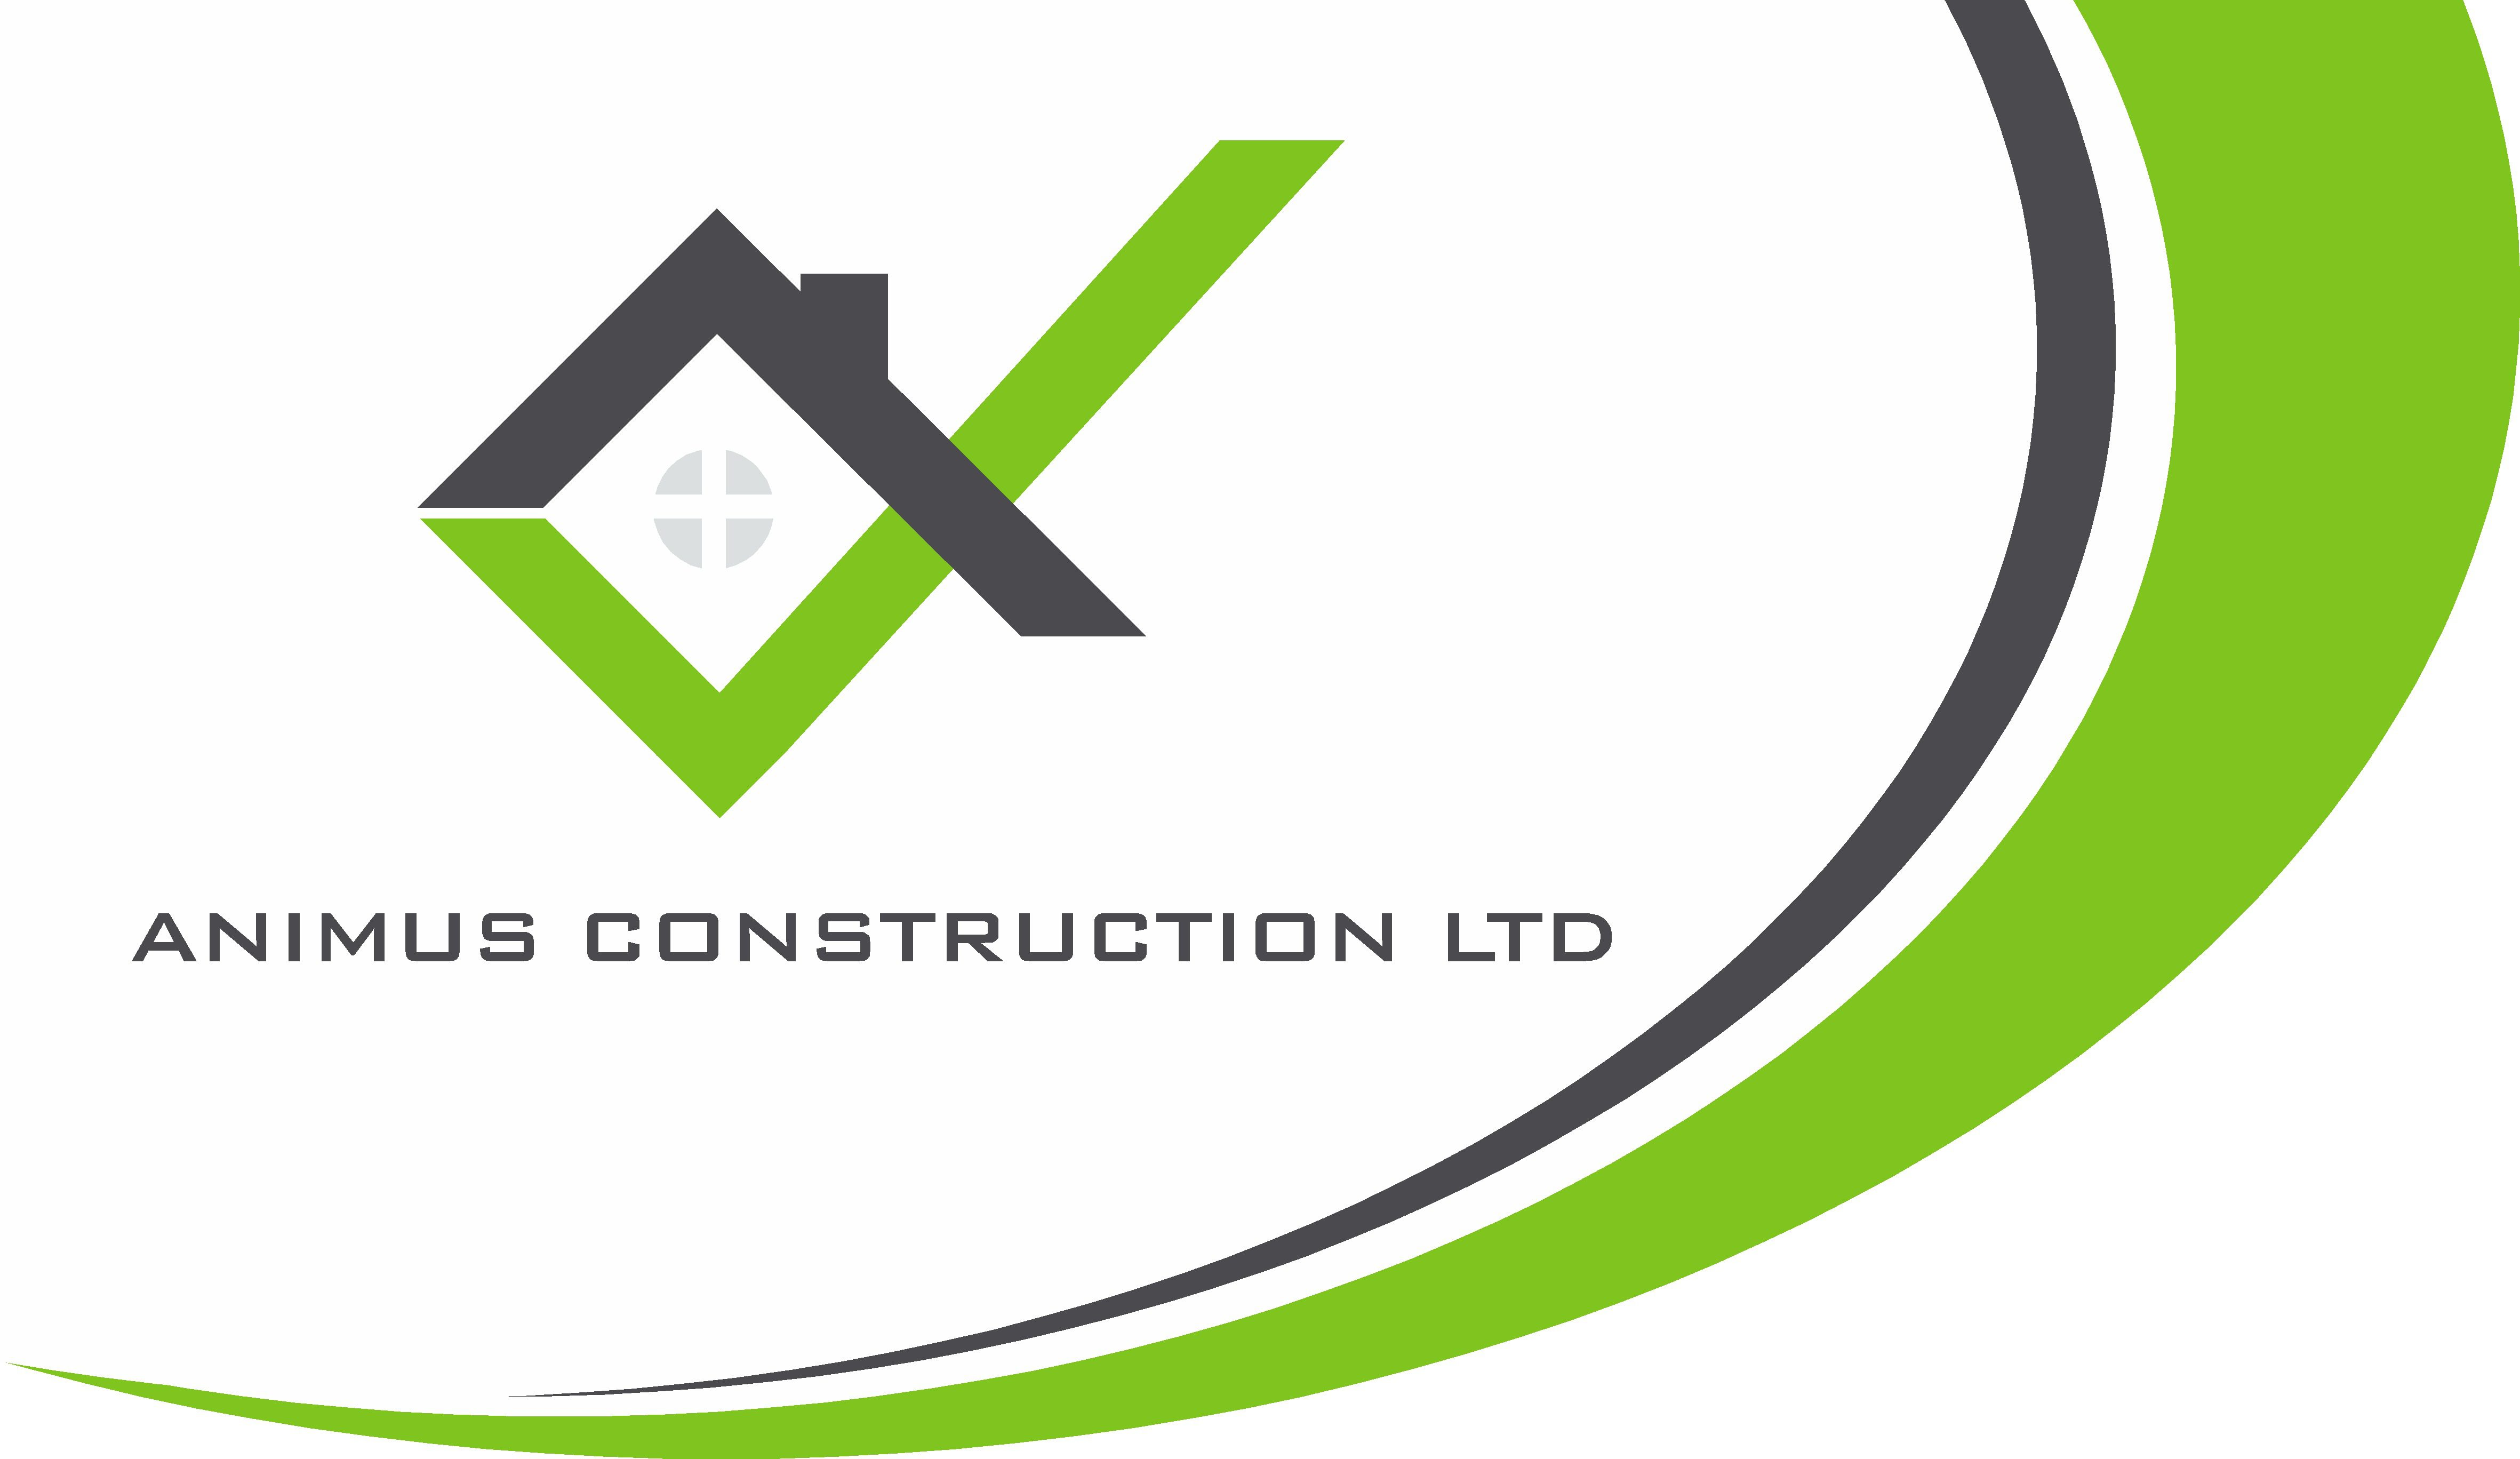 Animus Construction Ltd